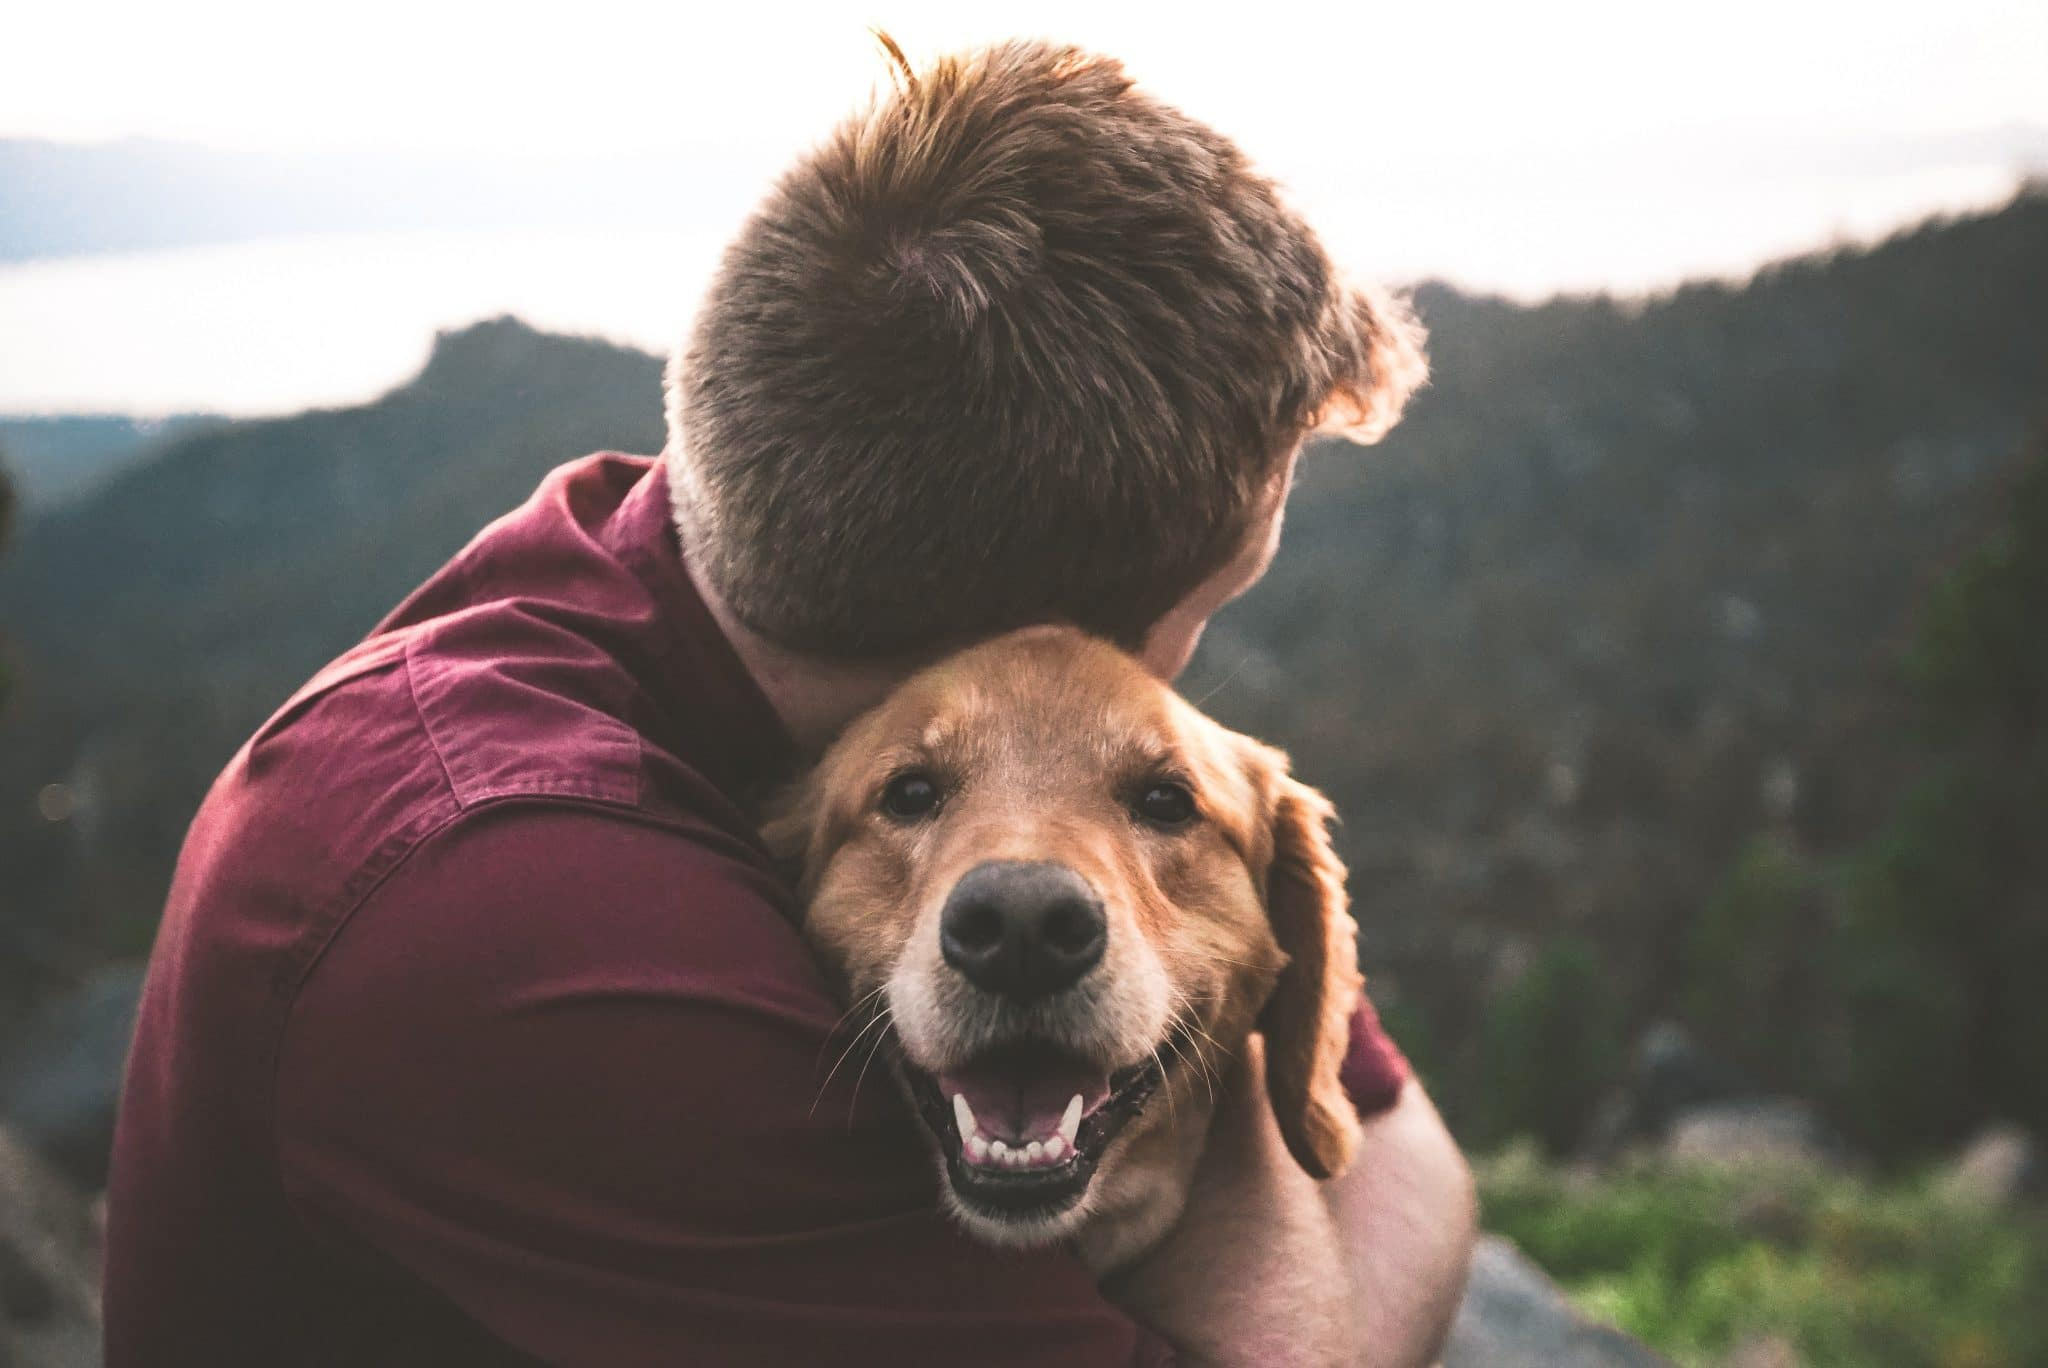 Pet owners are turning to CBD to help soothe pets